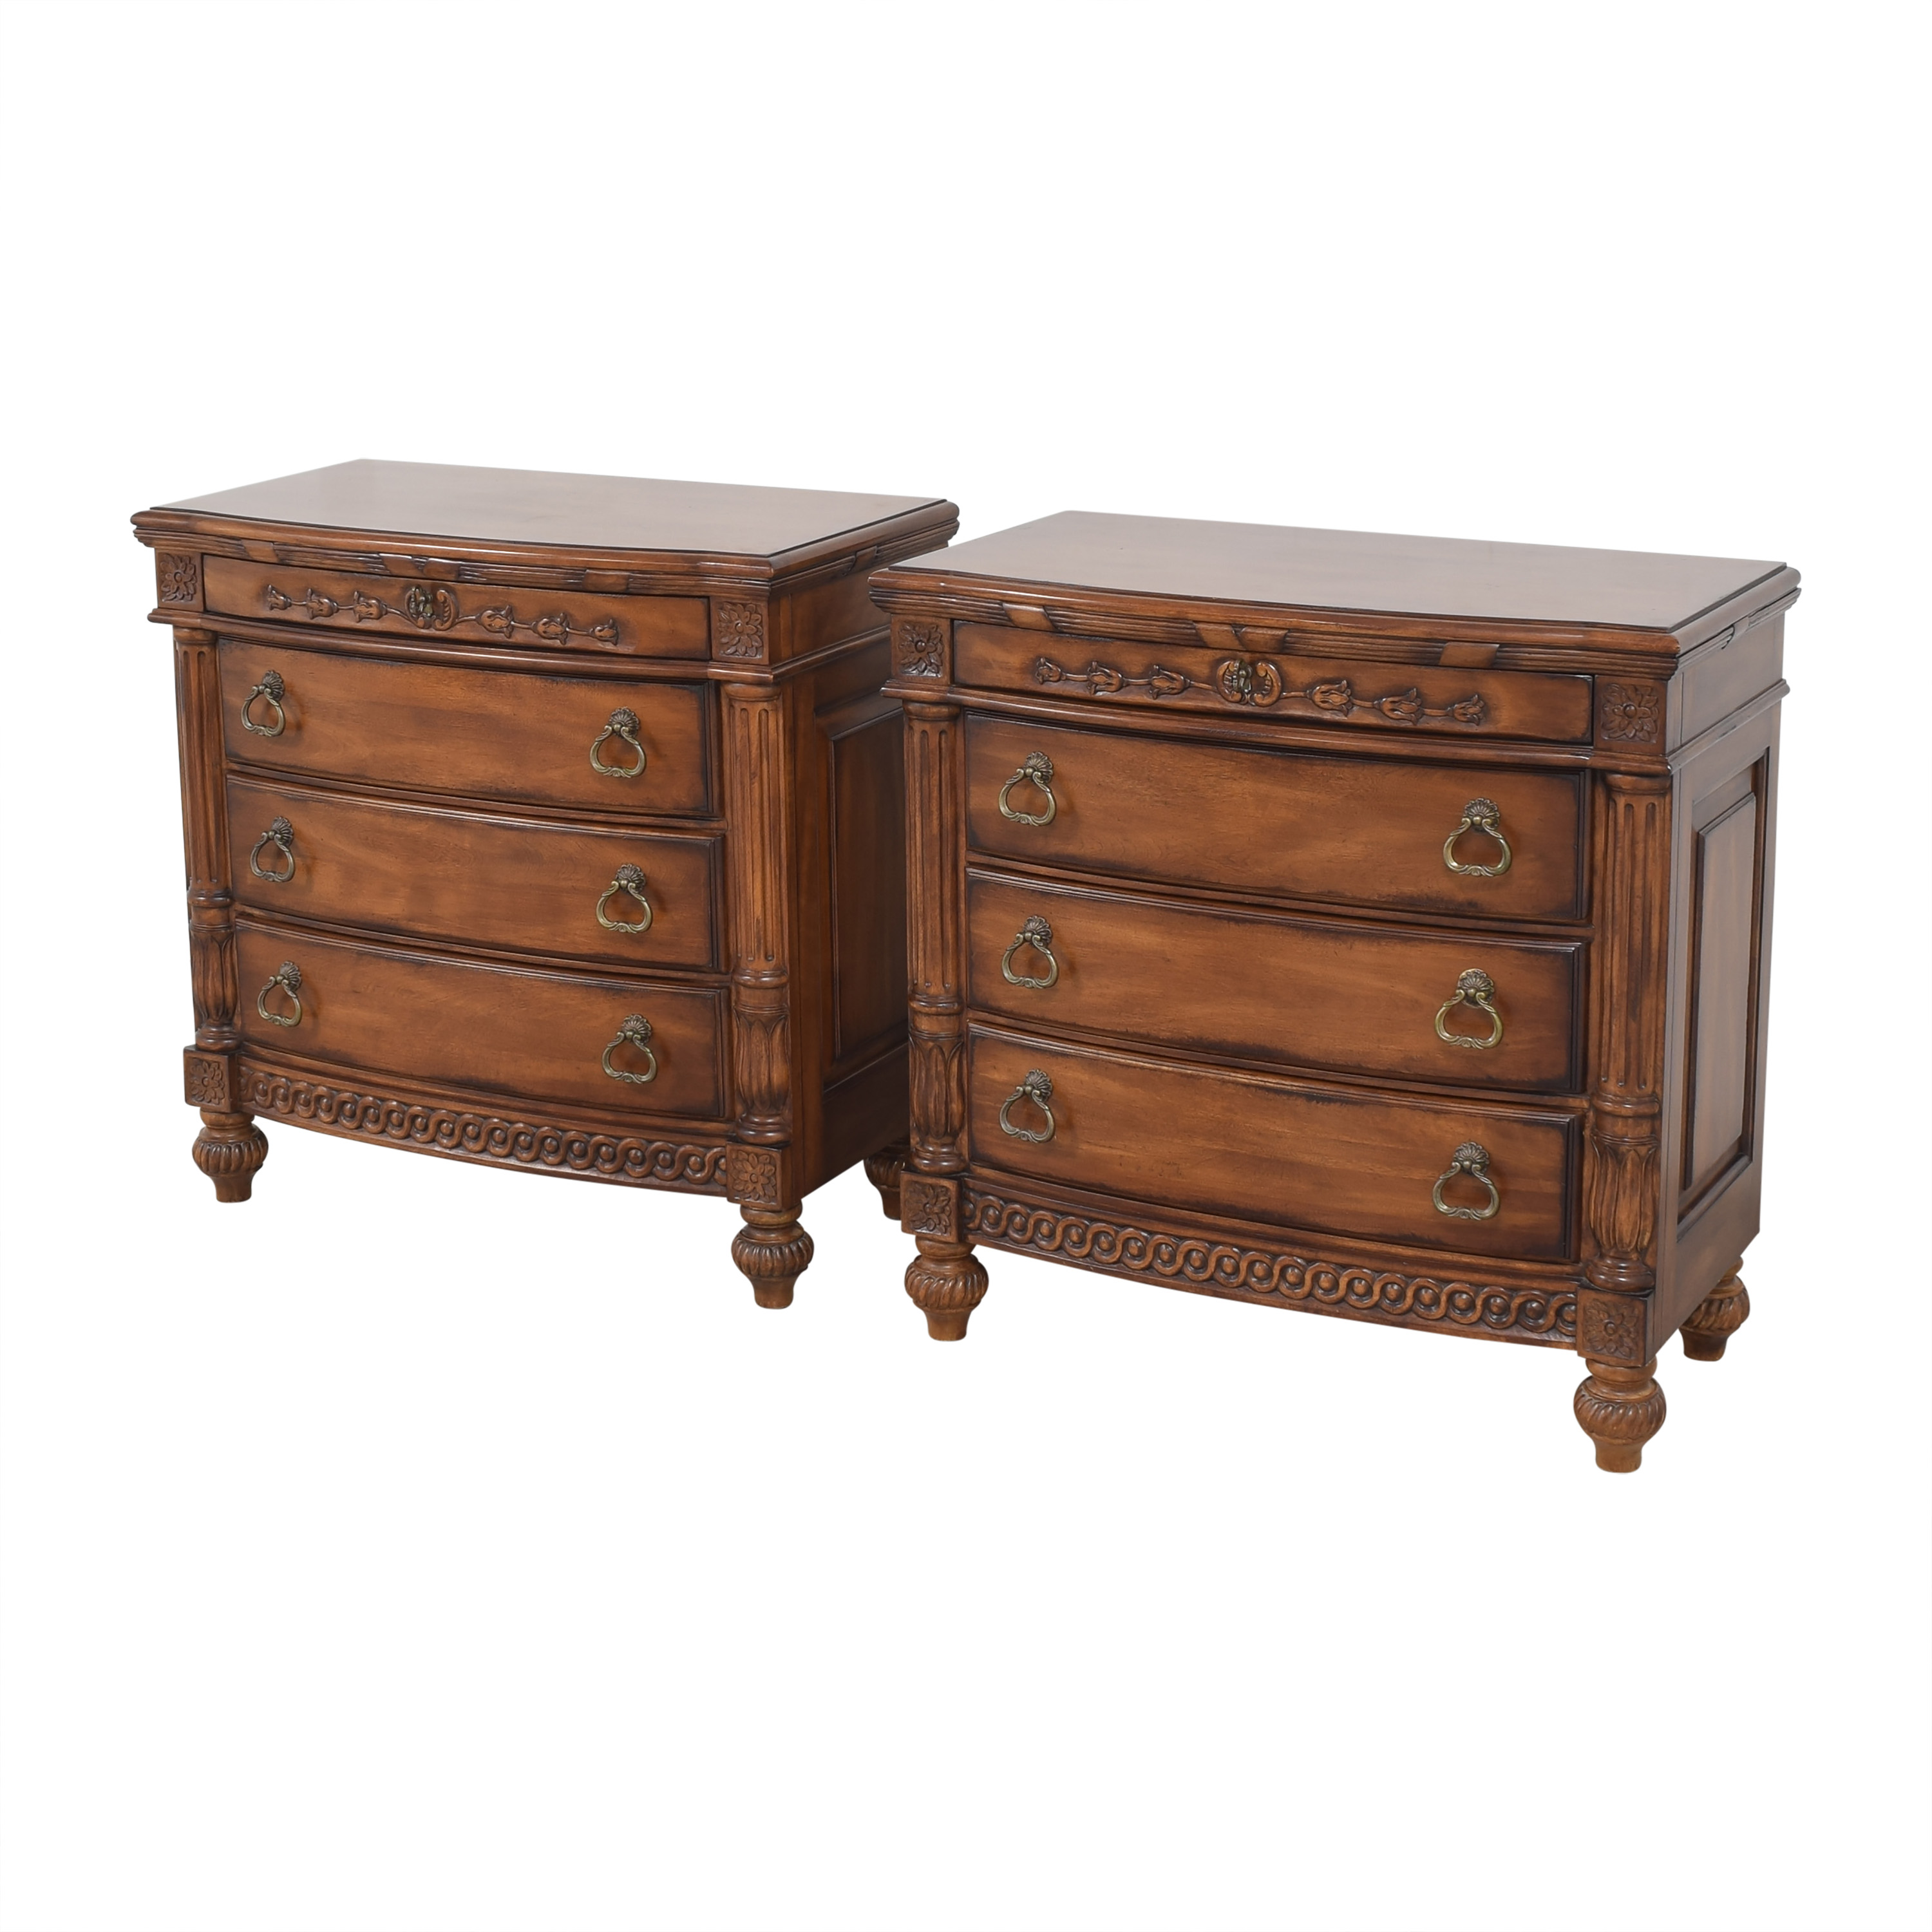 Laura Ashley Four Drawer Nightstands / Tables